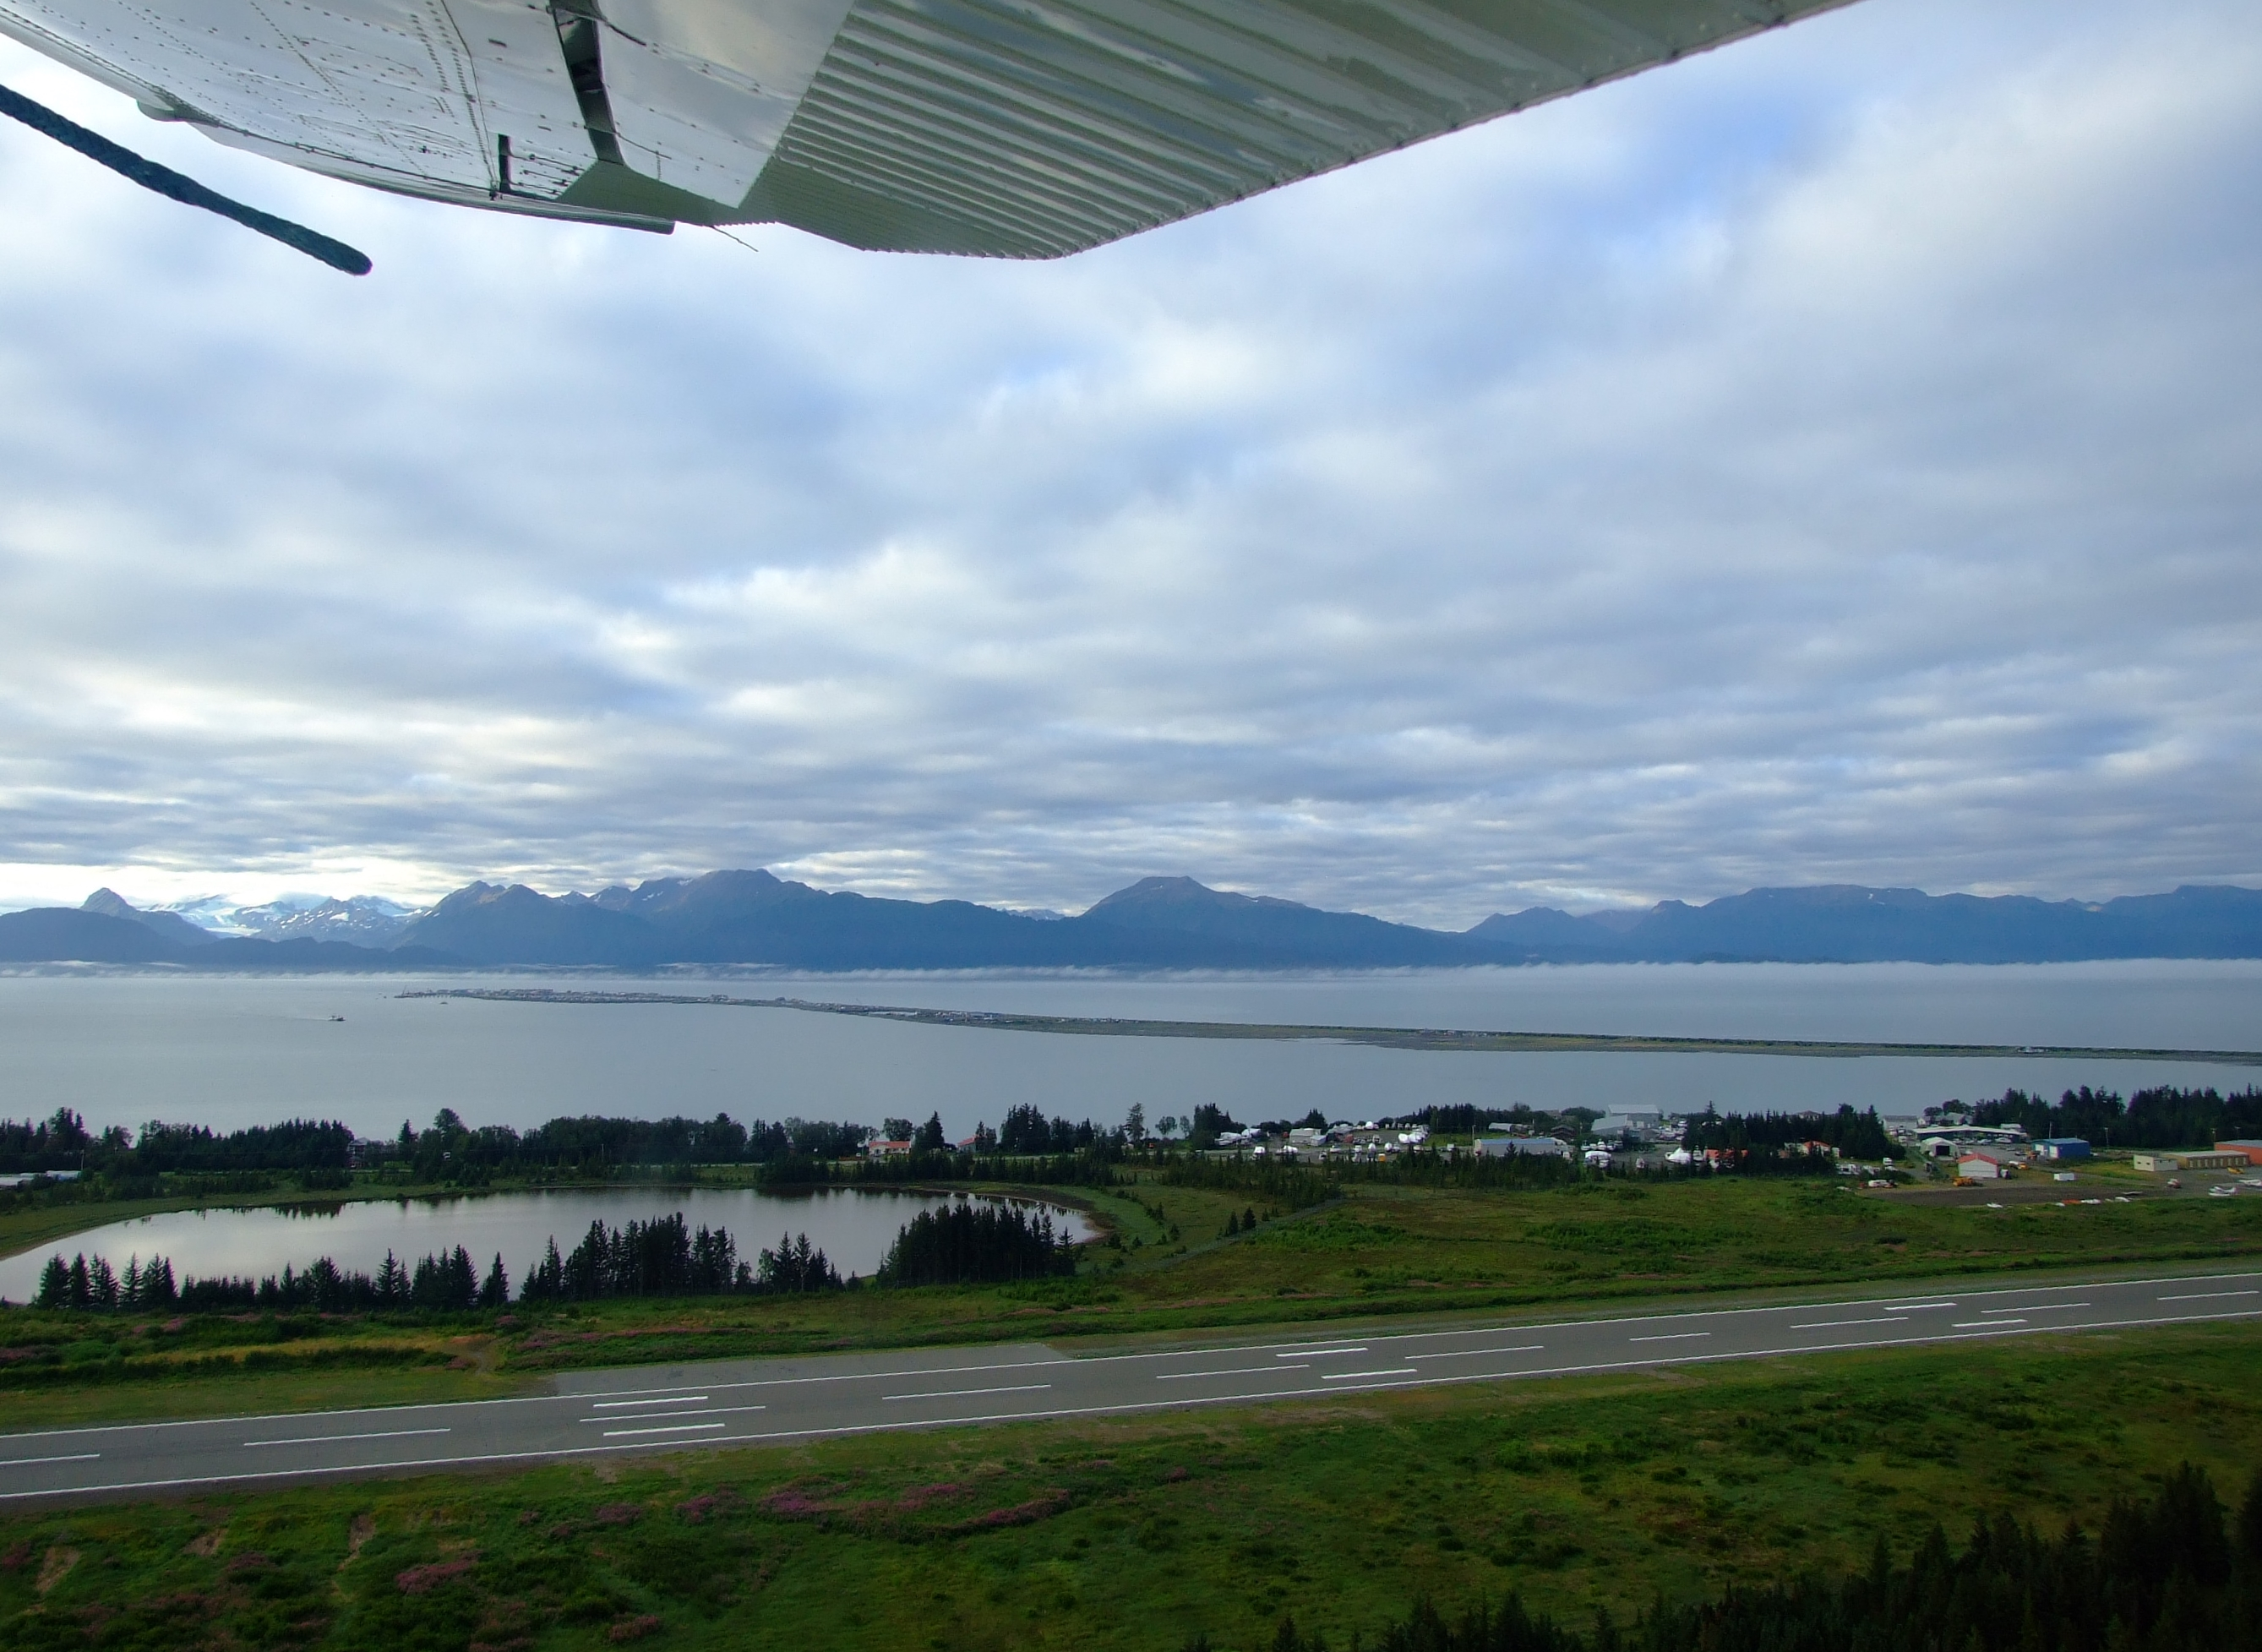 Take off in a north easterly direction from Beluga Lake with a clear view of the line of Homer Spit. At the top end of the Beluga Wetlands Complex is the Homer Airport Critical Habitat Area which can be visited on foot.